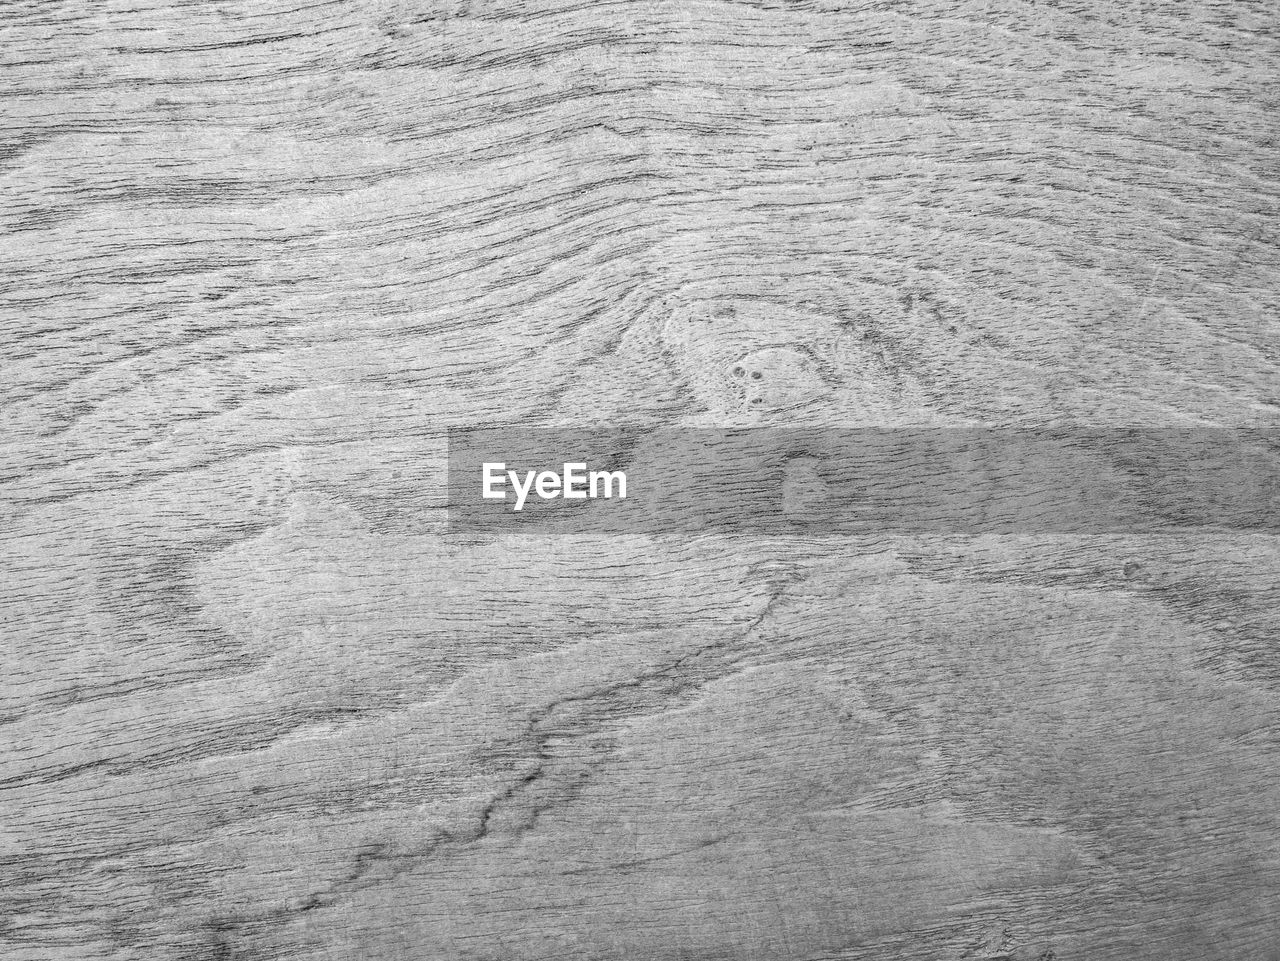 backgrounds, textured, pattern, full frame, no people, gray, material, copy space, wood - material, flooring, textured effect, wood, abstract, rough, macro, close-up, knotted wood, extreme close-up, surface level, blank, wood grain, parquet floor, clean, abstract backgrounds